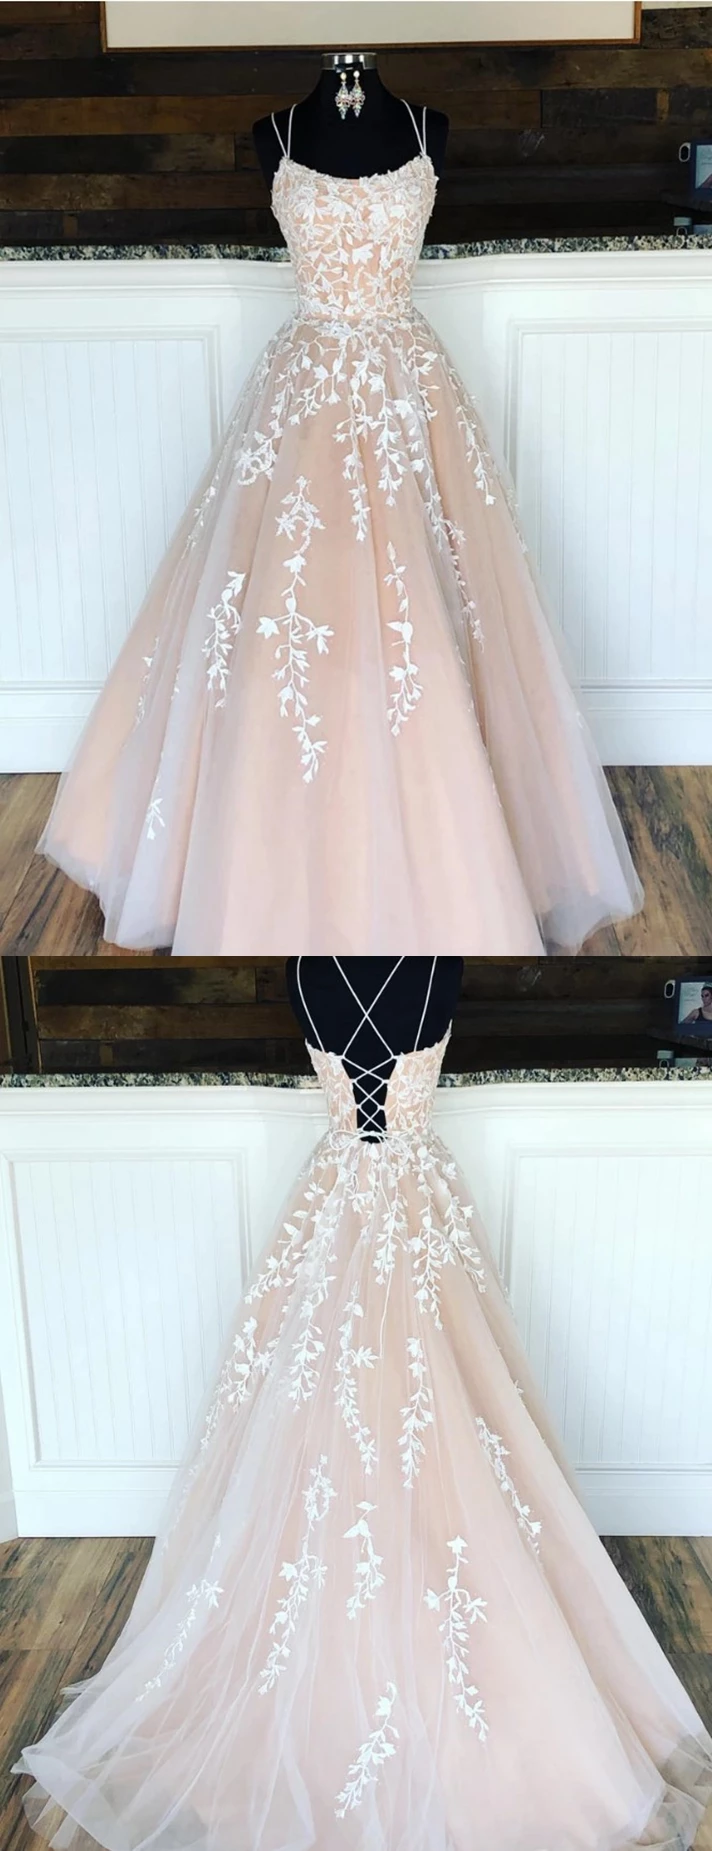 Champagne Prom Dresses Long, Evening Dress ,Winter Formal Dress, Pageant Dance Dresses, Graduation School Party Gown, PC0205